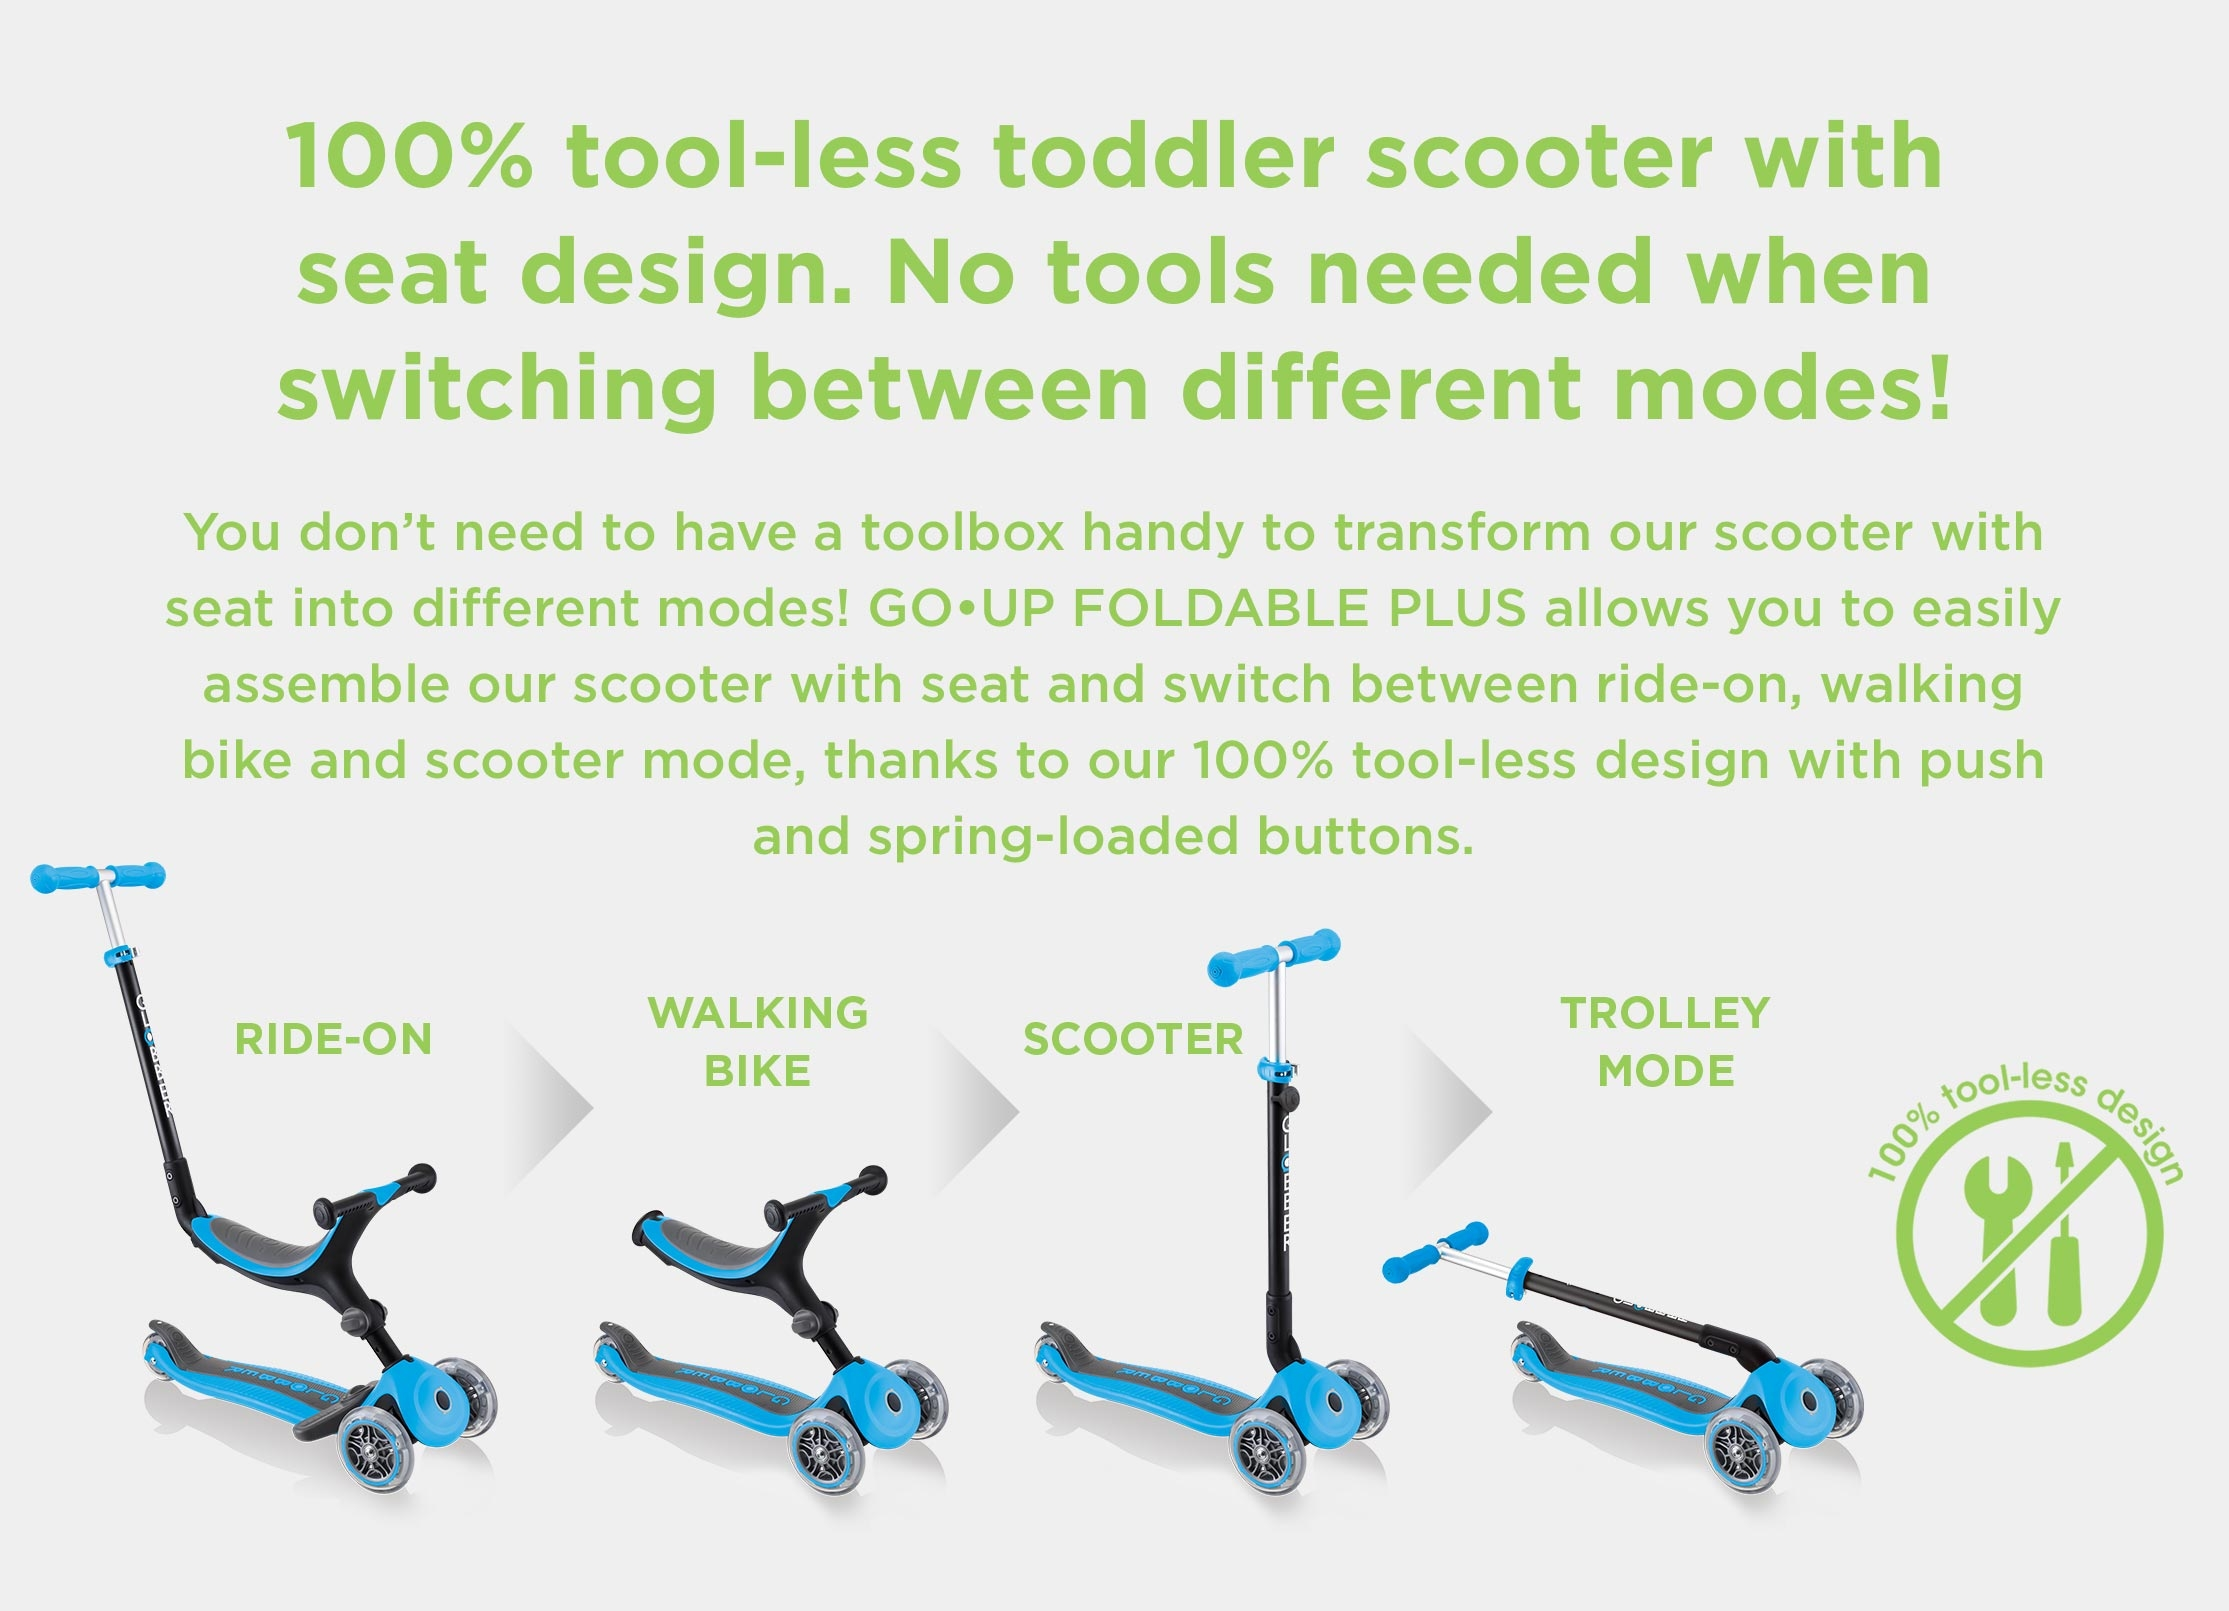 No tools needed when switching between riding modes on the adjustable scooter for toddlers